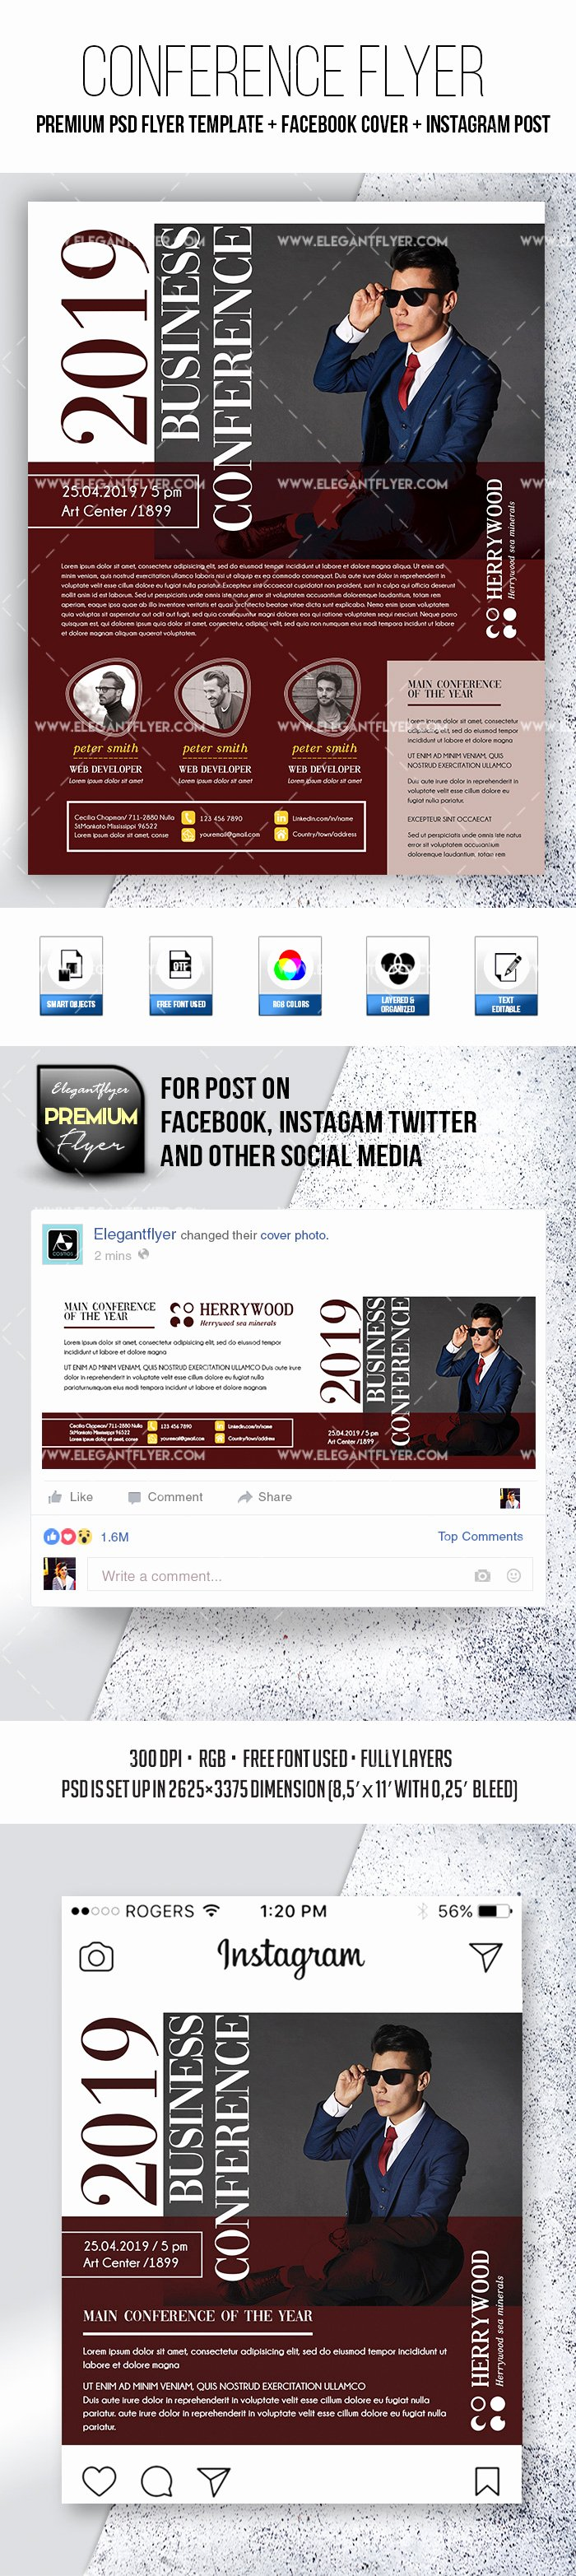 Instagram Post Template Psd New Conference 2019 – Psd Flyer Template Cover